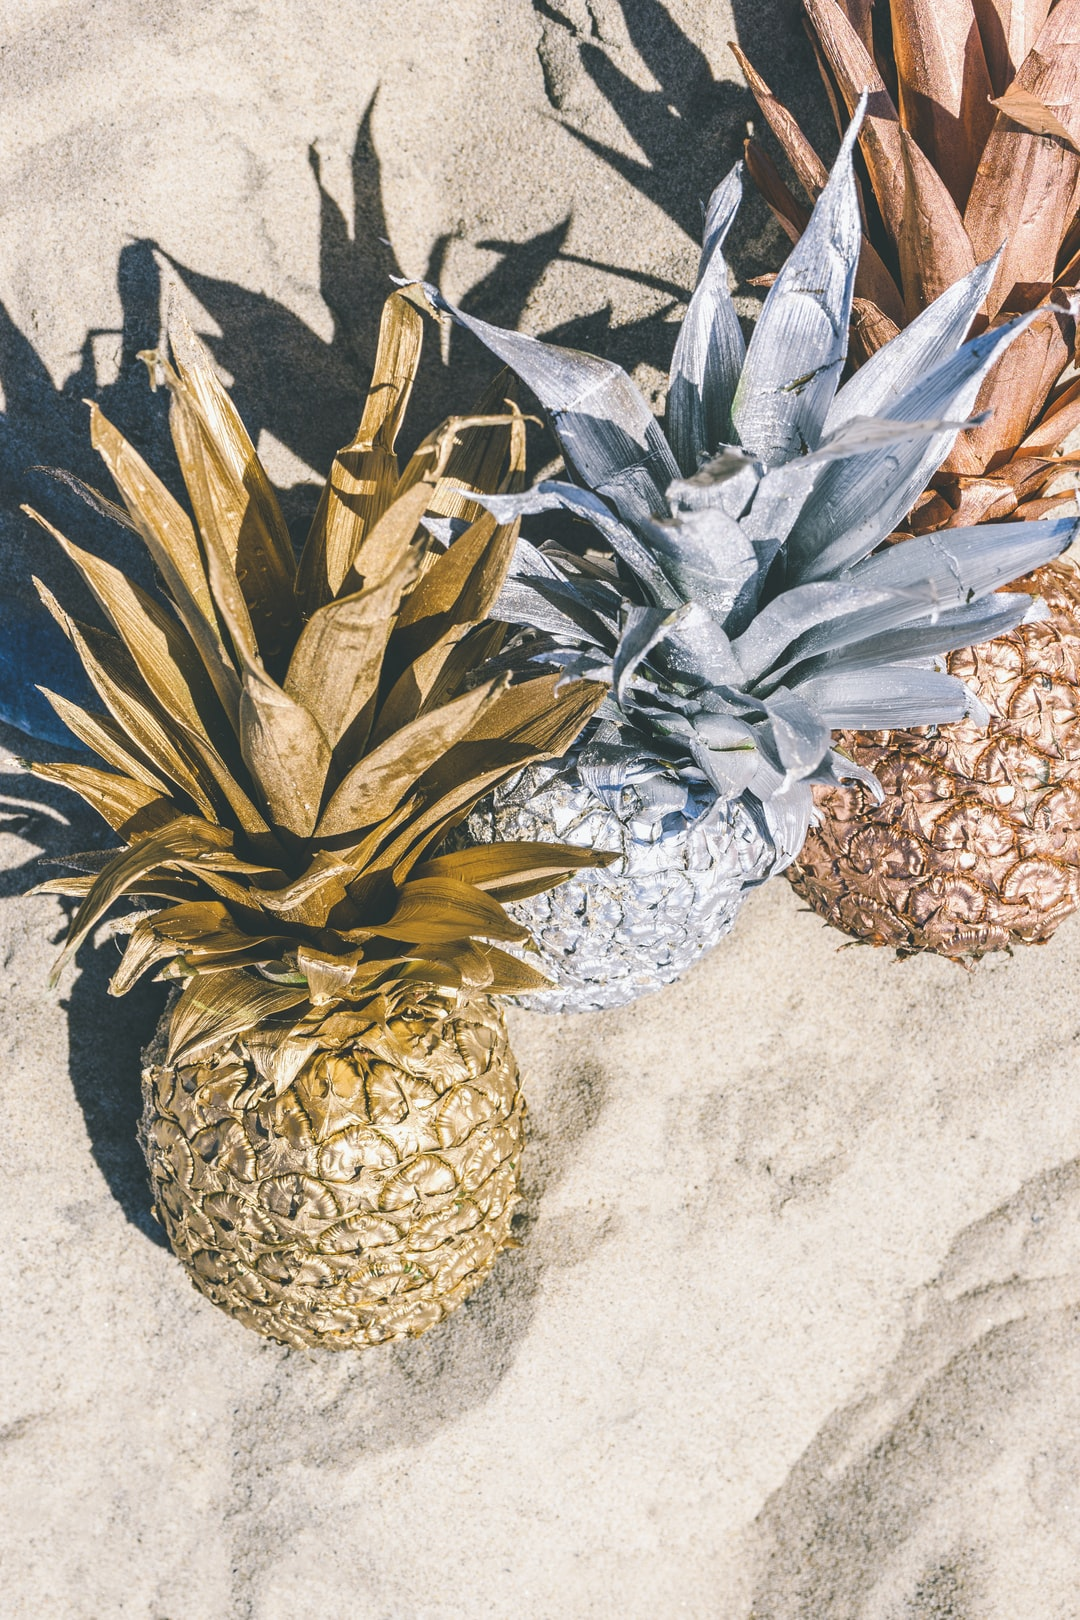 gold, silver, bronze pineapple in sand